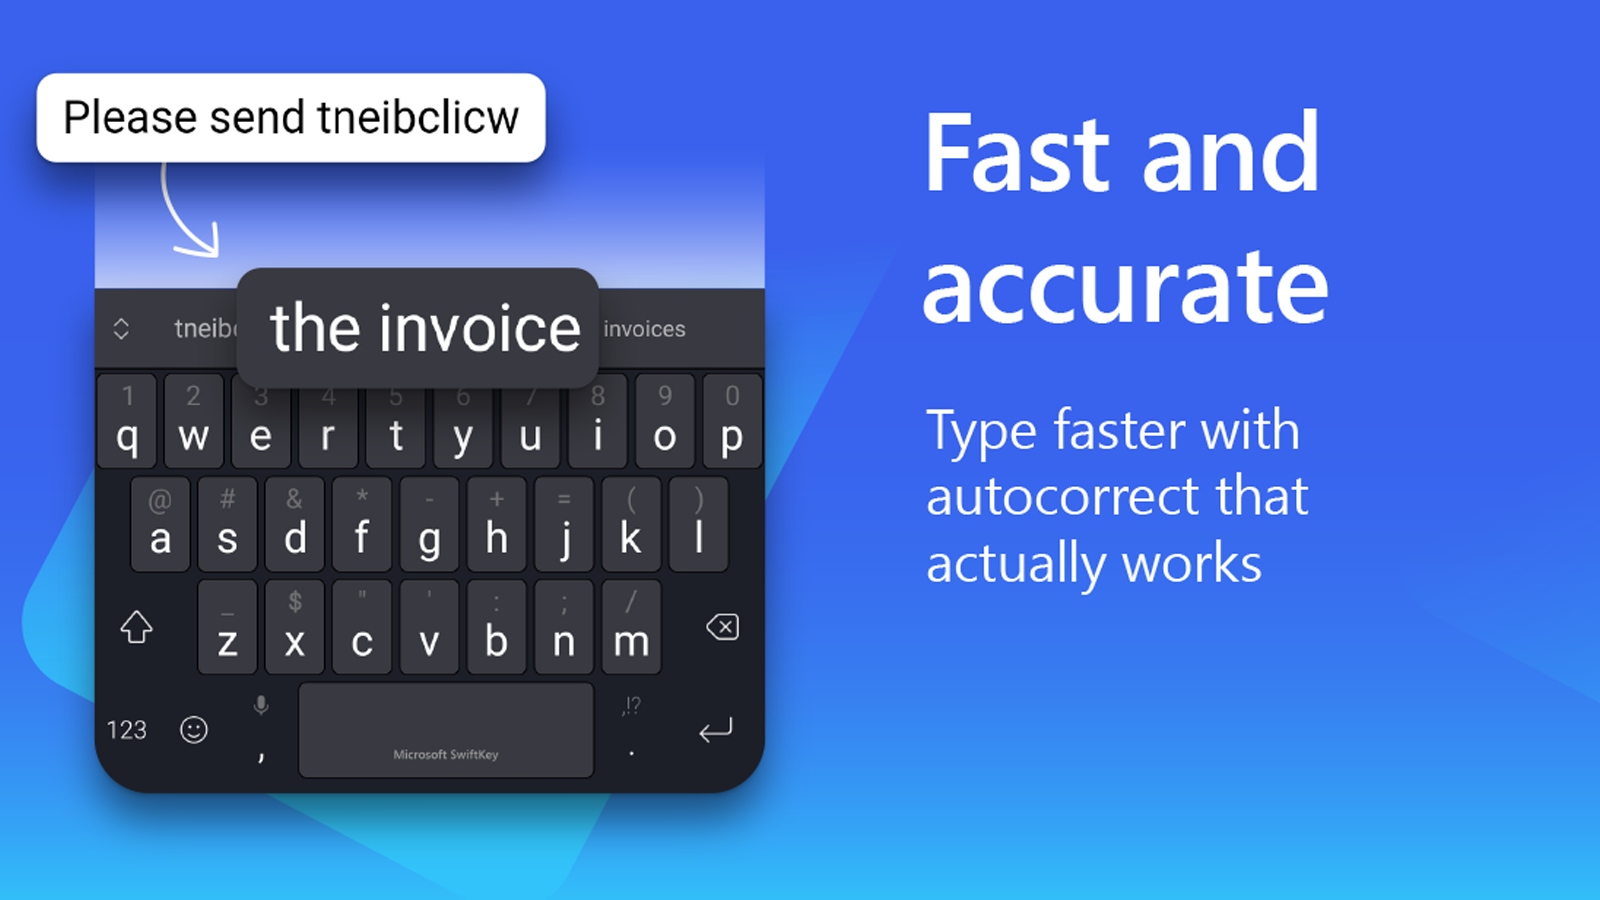 Microsoft SwiftKey app is fast and accurate